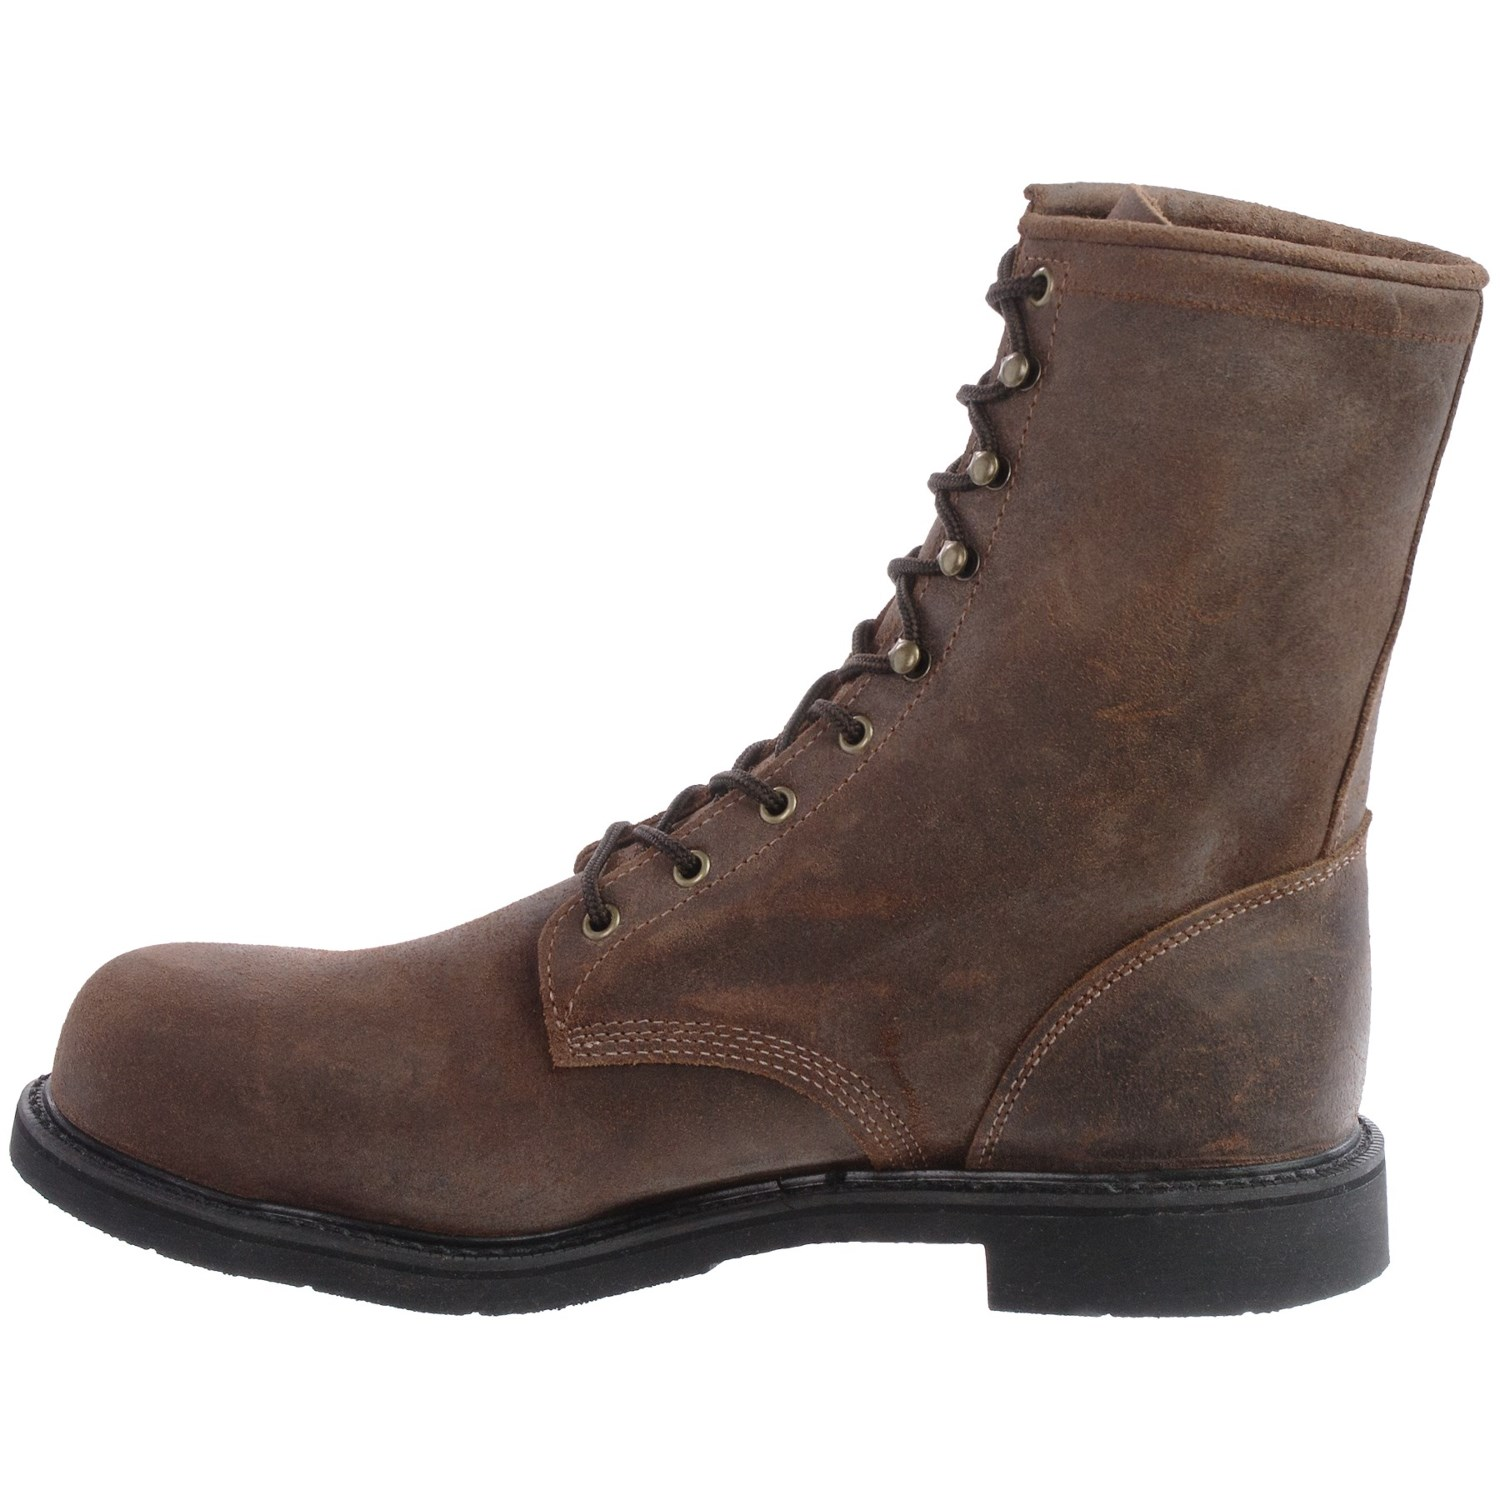 Justin Boots Dark Mountain Leather Work Boots (For Men) - Save 46%